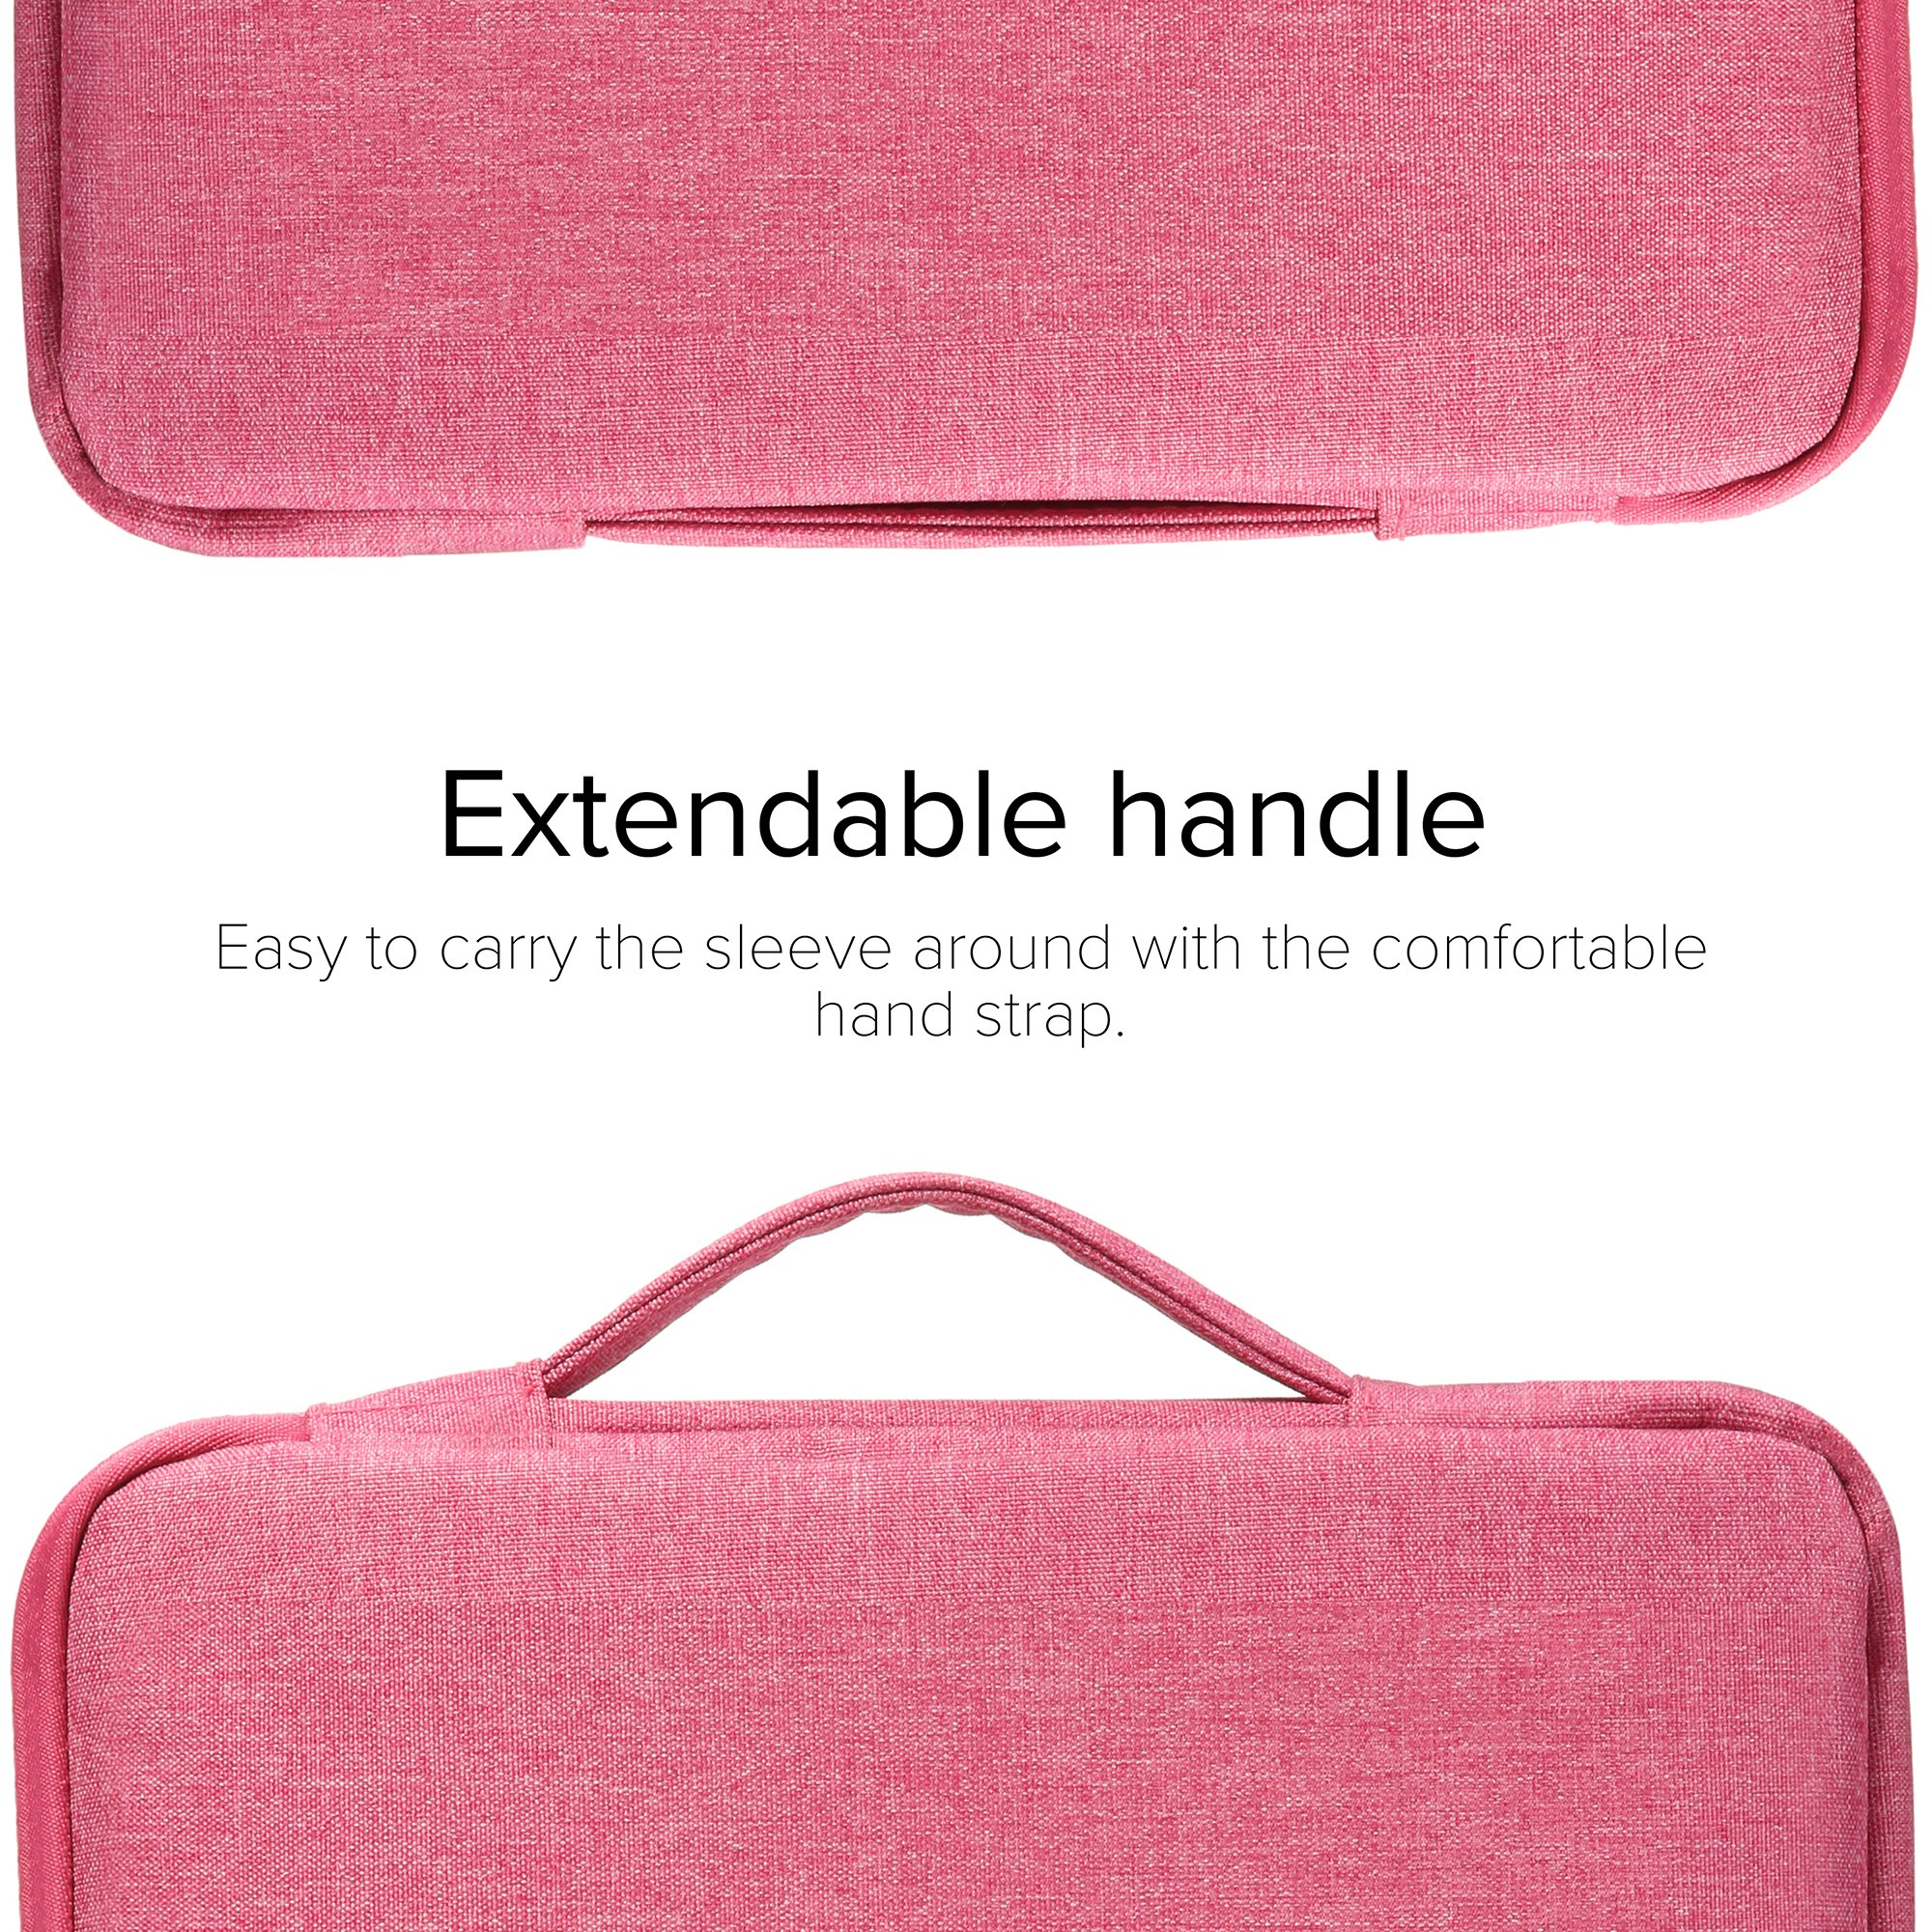 GMYLE 2 in 1 Bundle Pink Marble Soft-Touch Plastic Hard Case for Old MacBook Pro 13 Inch with Retina Display (Model: A1502/A1425) & Water Resistant Protective Laptop Bag Sleeve with Handle,Pink by GMYLE (Image #5)